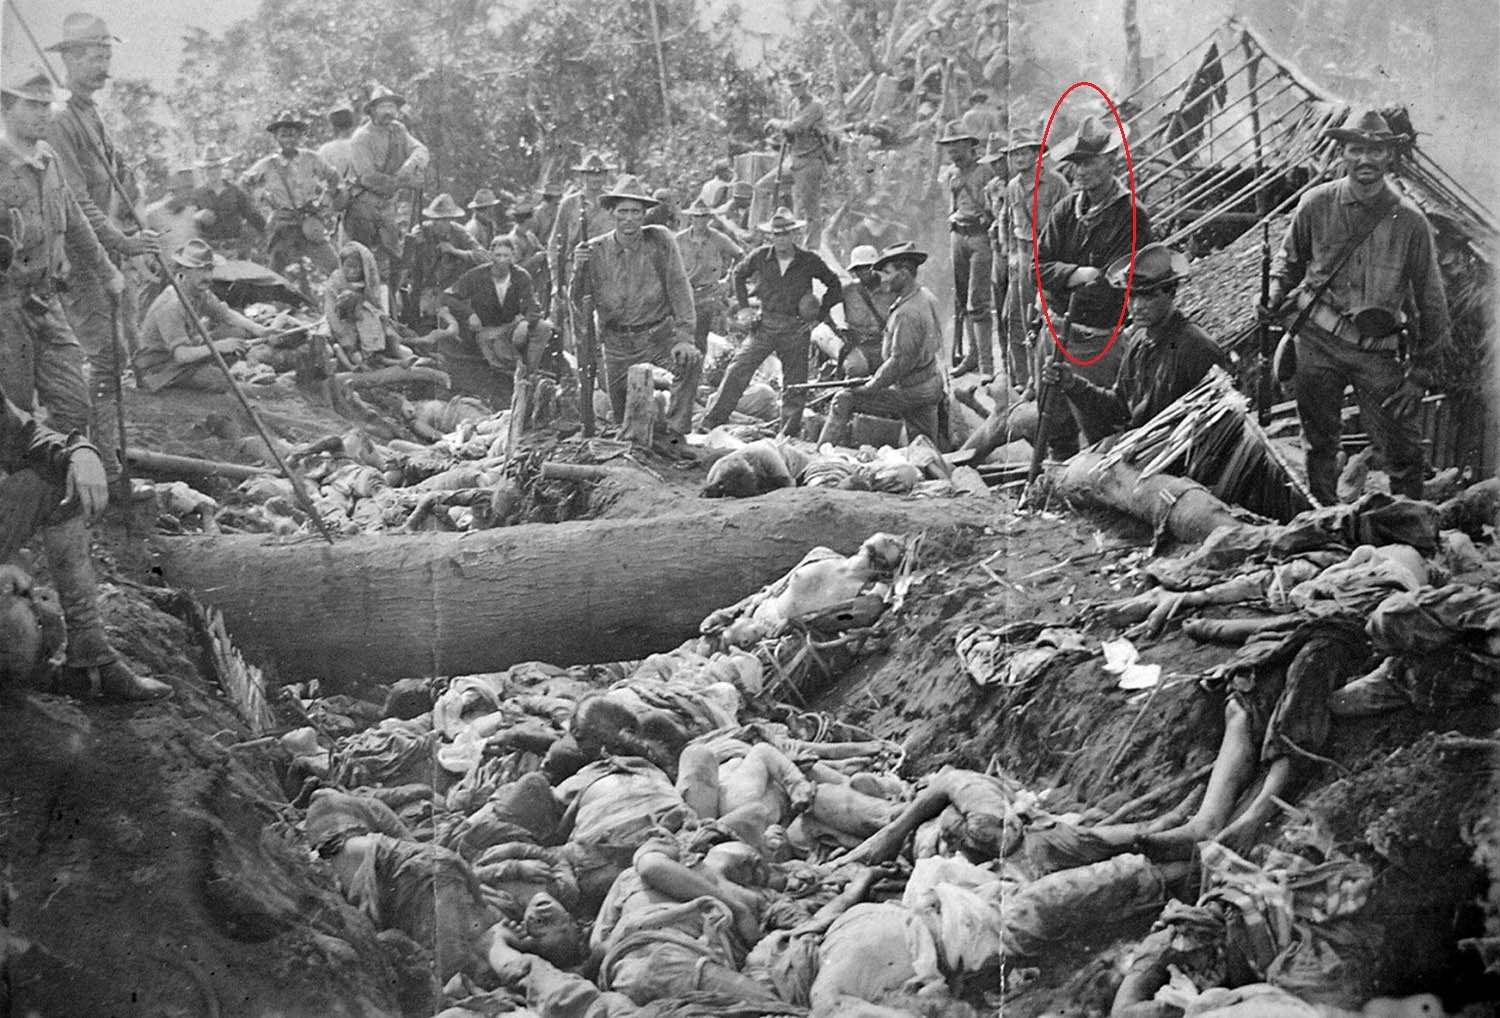 US soldiers pose with the bodies of Moro insurgents, Philippines, 1906 Roy Rainey Hart.